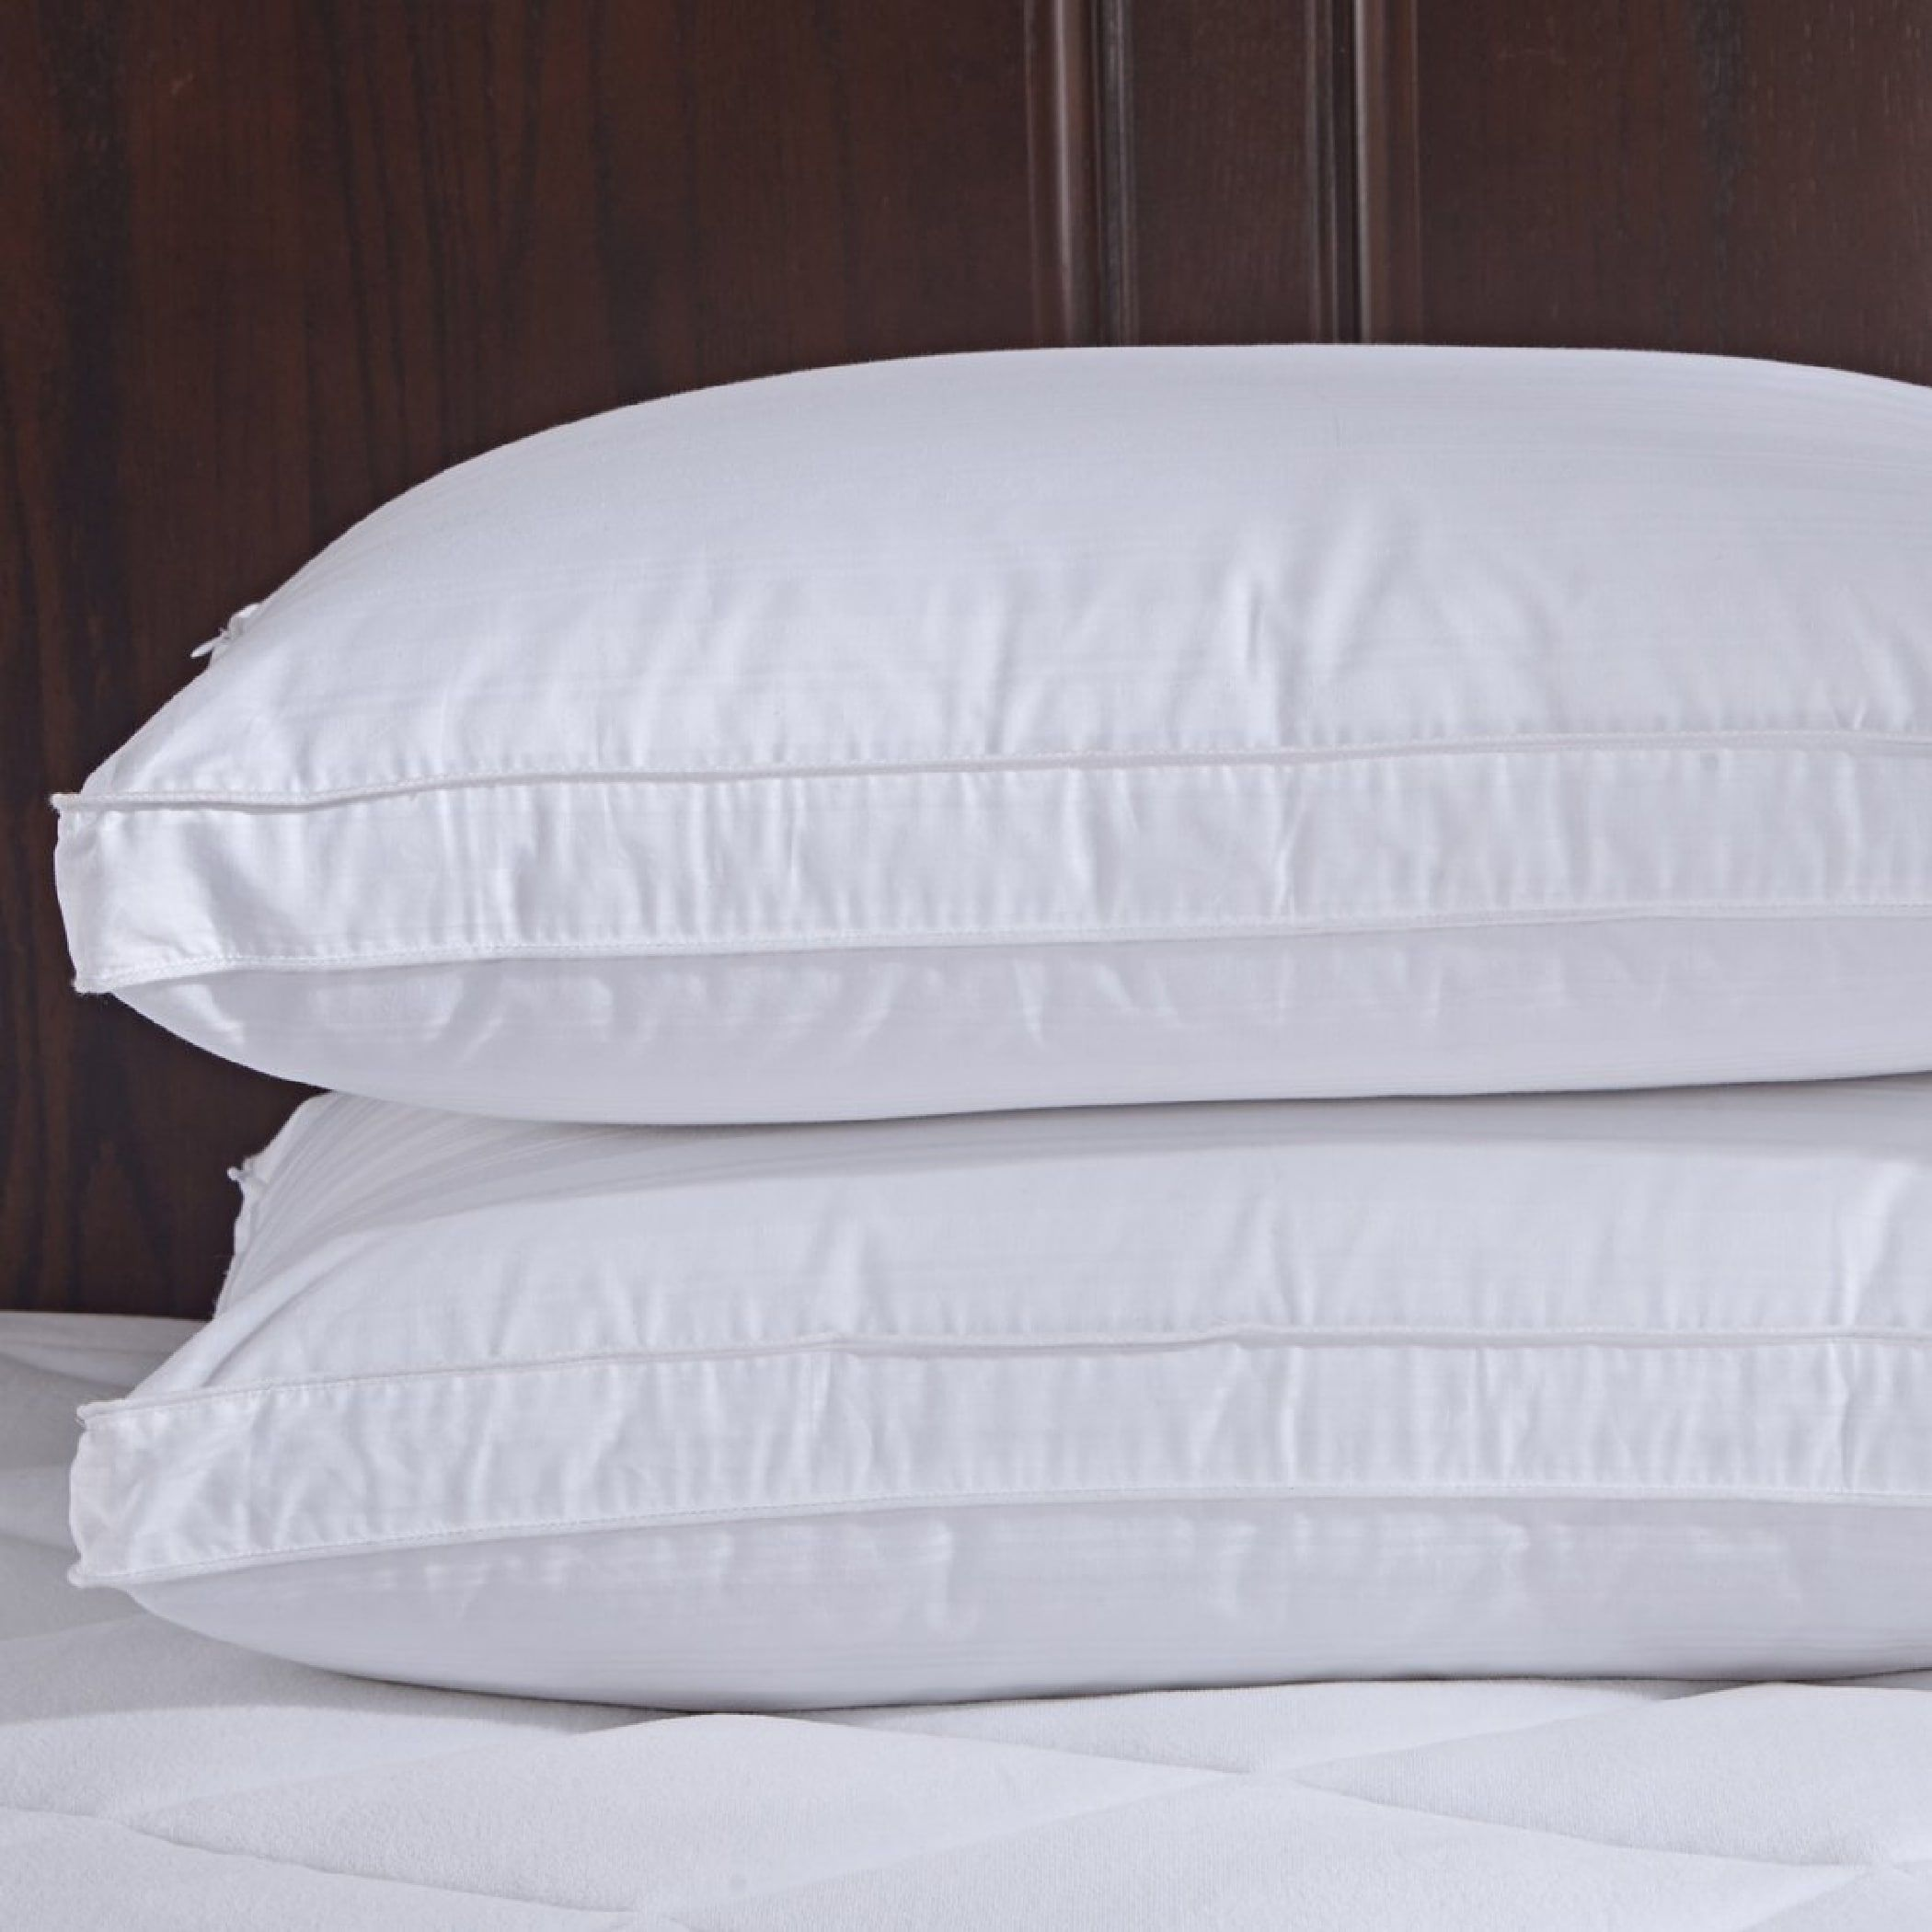 protectors pillow protector quilted silentnight pair edit